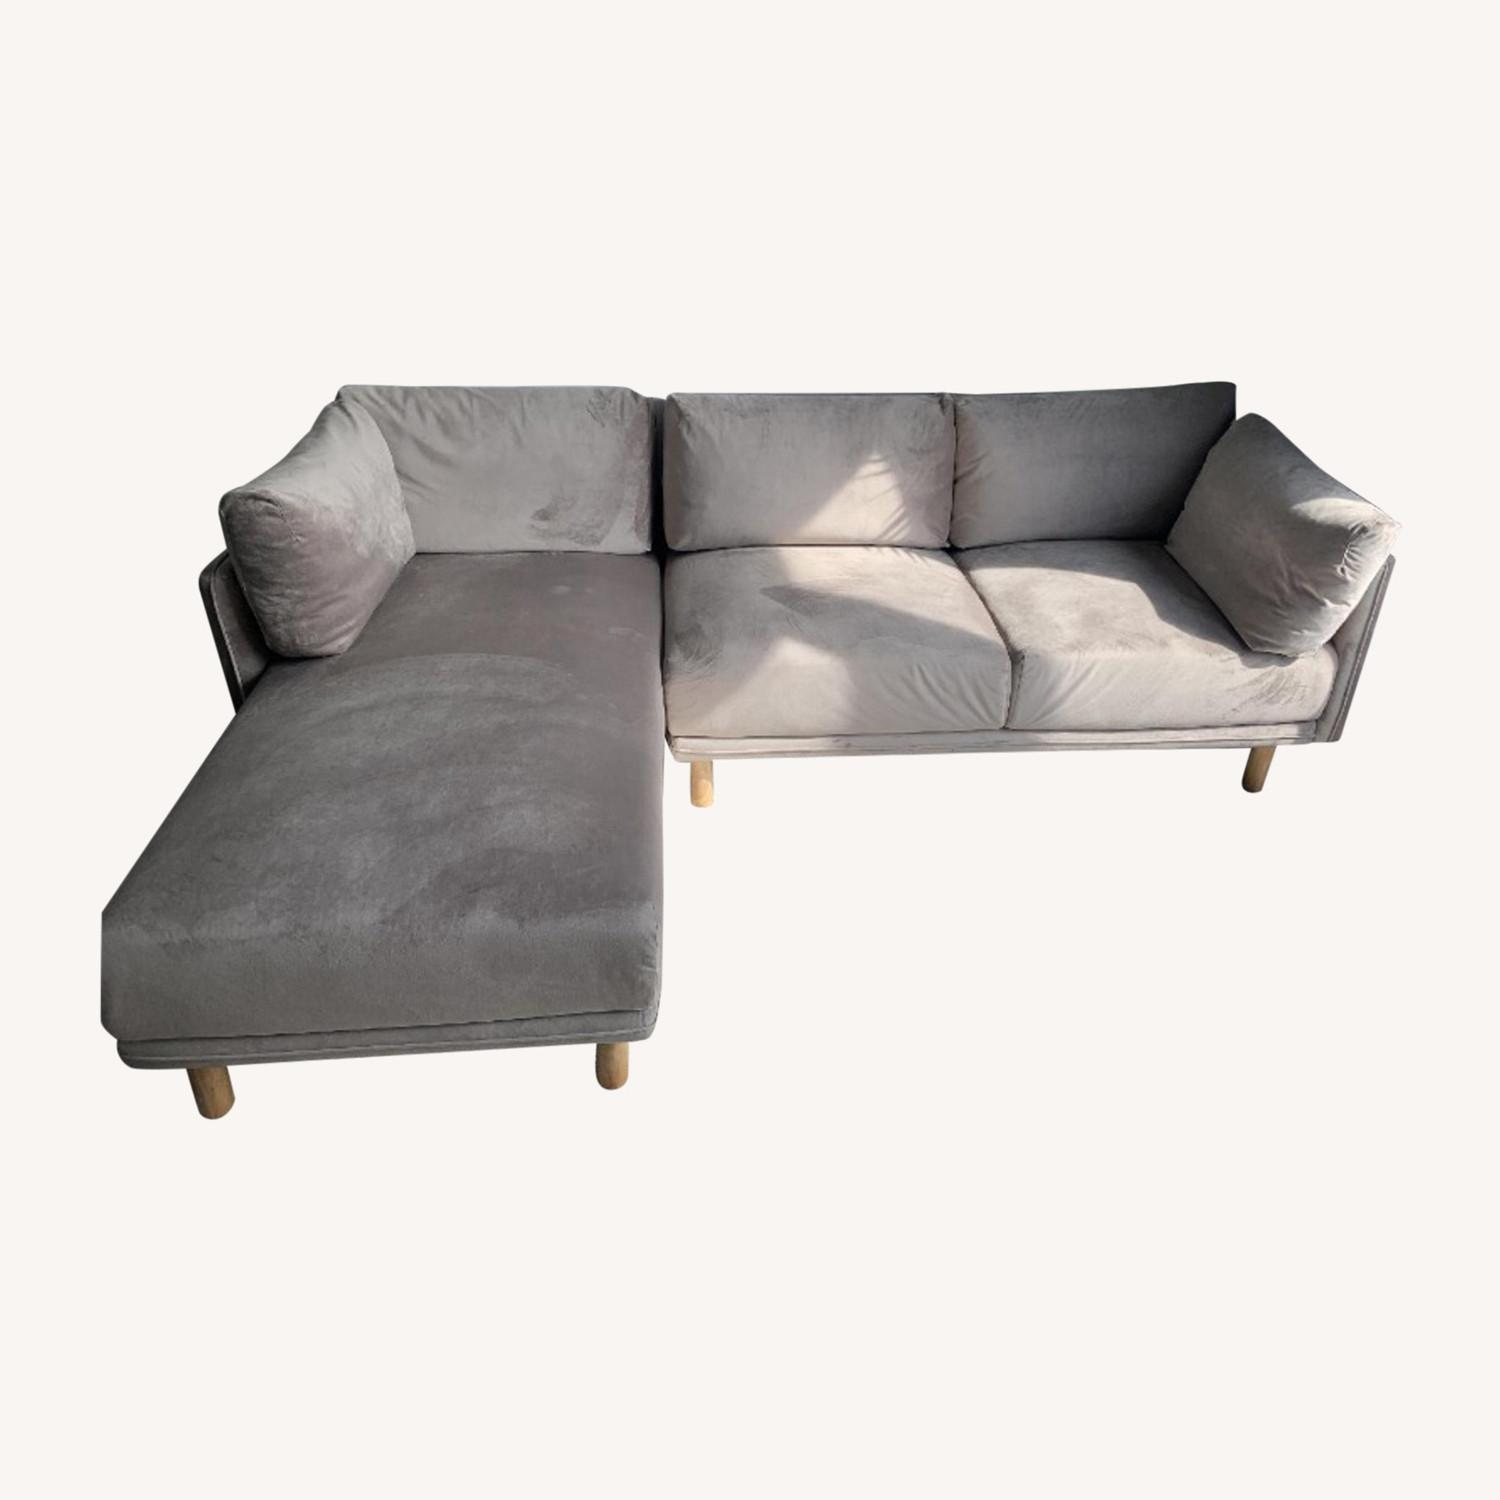 Rove Anderson Collection Sectional Sofa - image-0